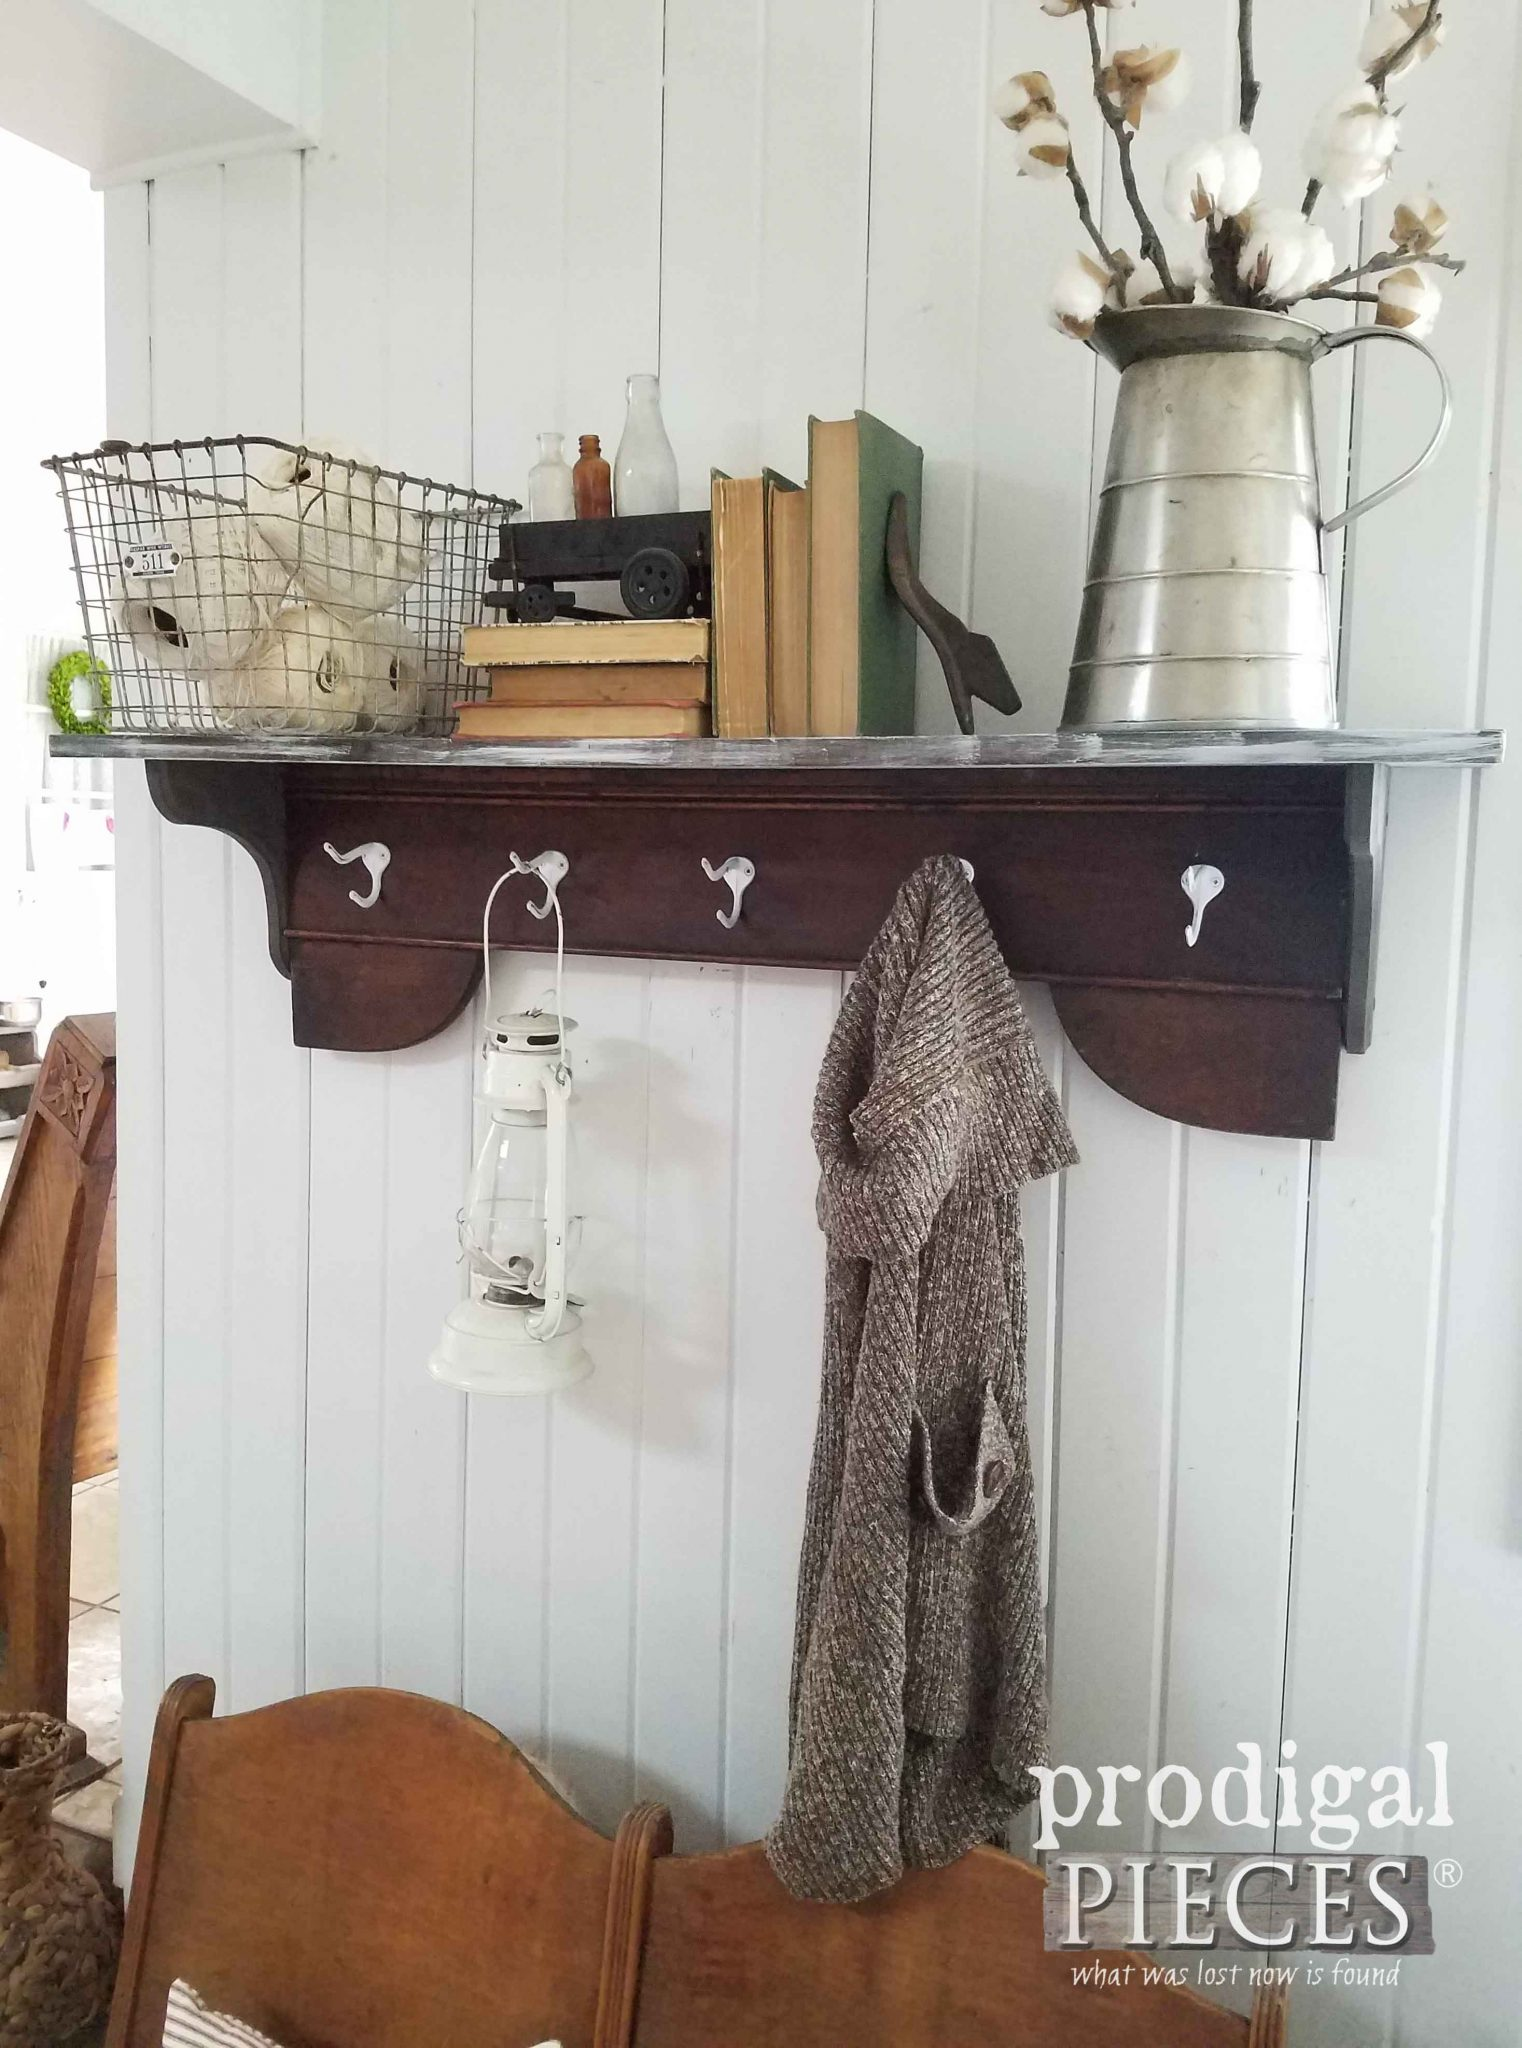 DIY Farmhouse Coat Rack with Shelf for Storage by Prodigal Pieces | prodigalpieces.com